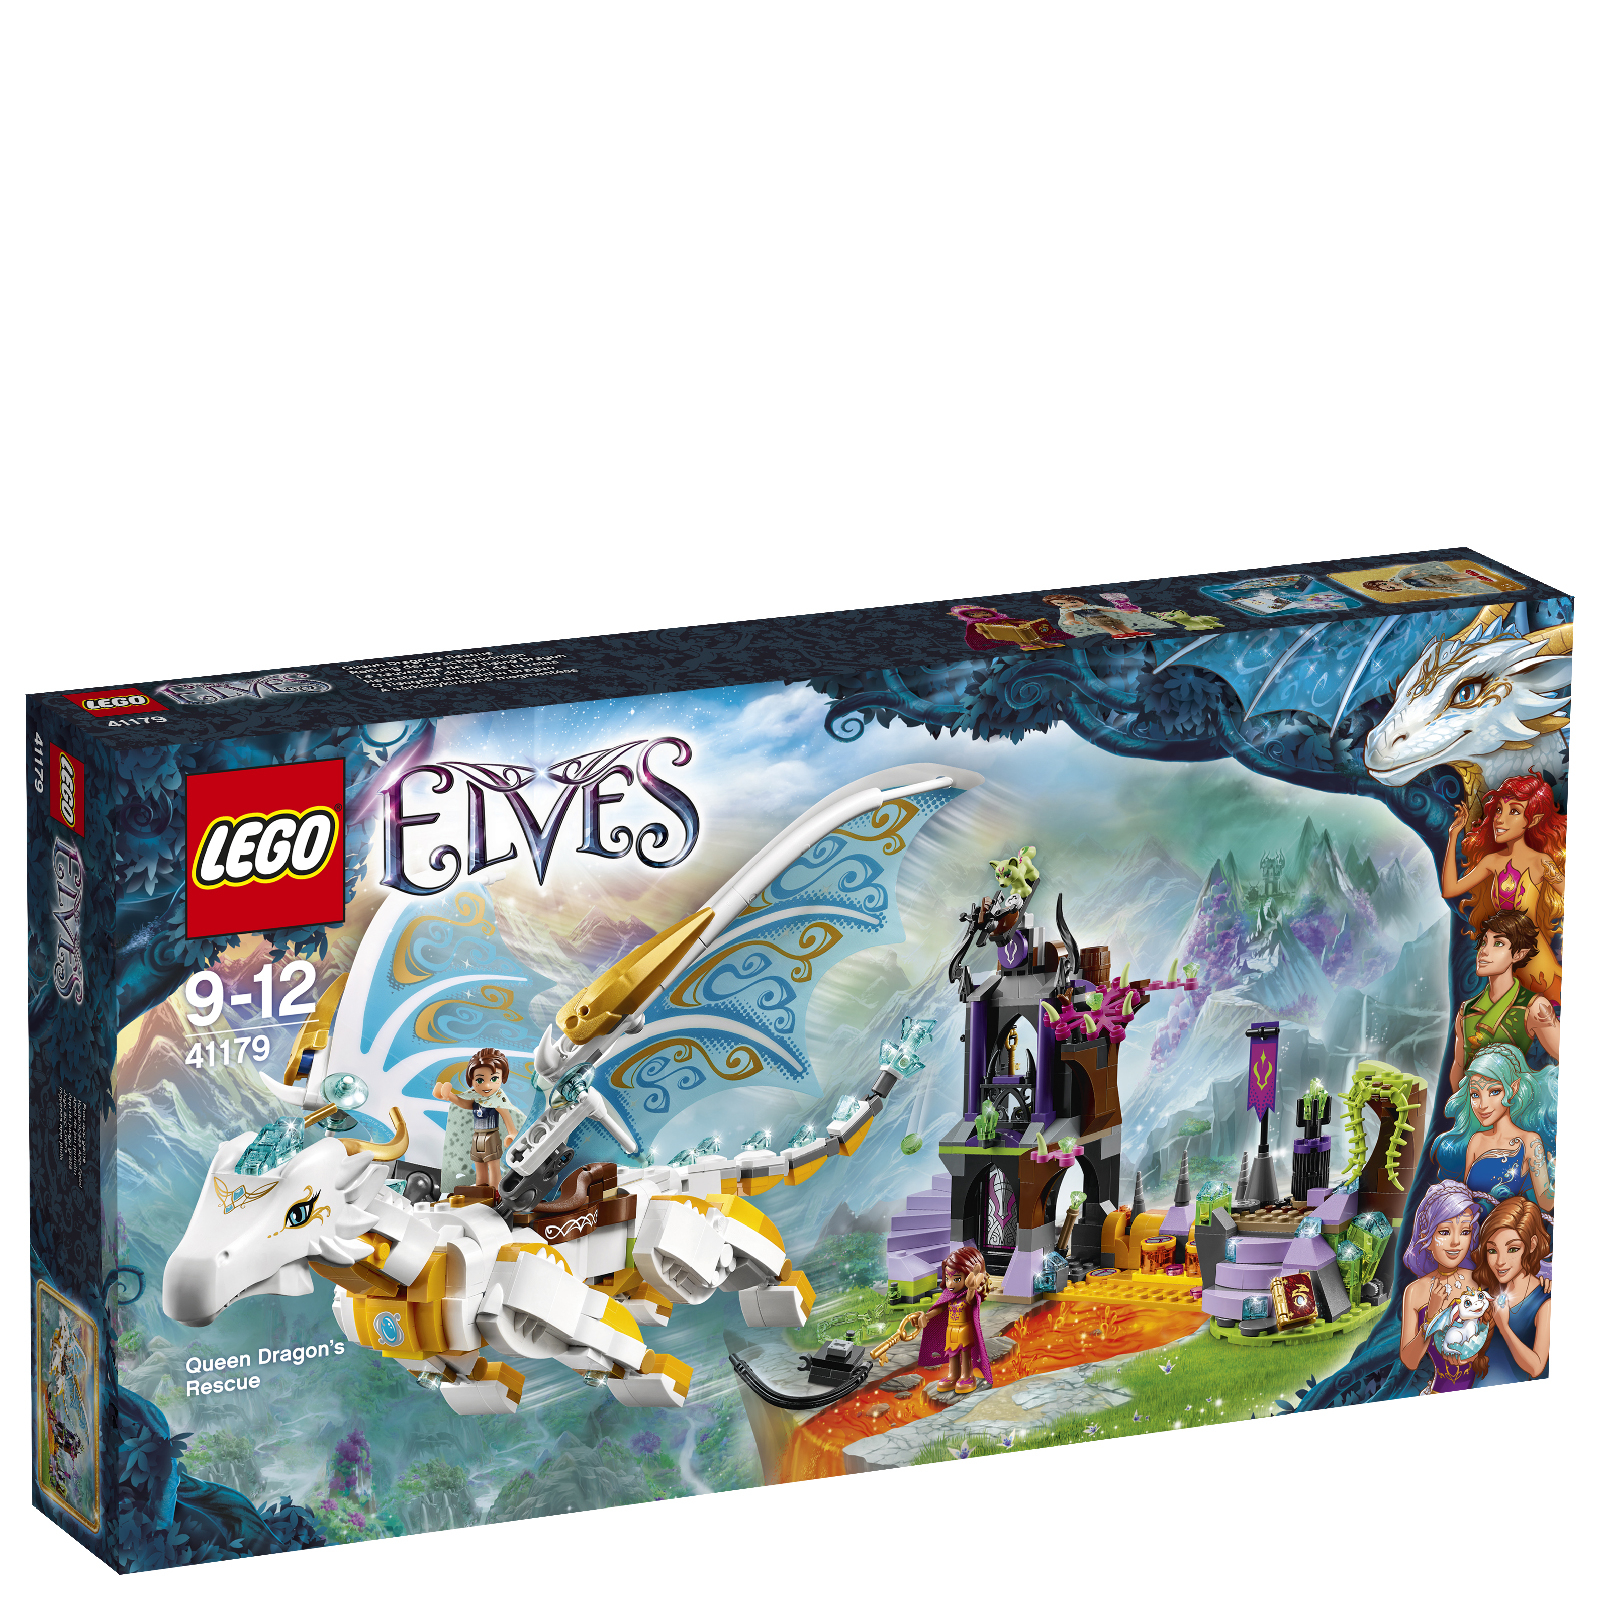 LEGO Elves: Queen Dragon